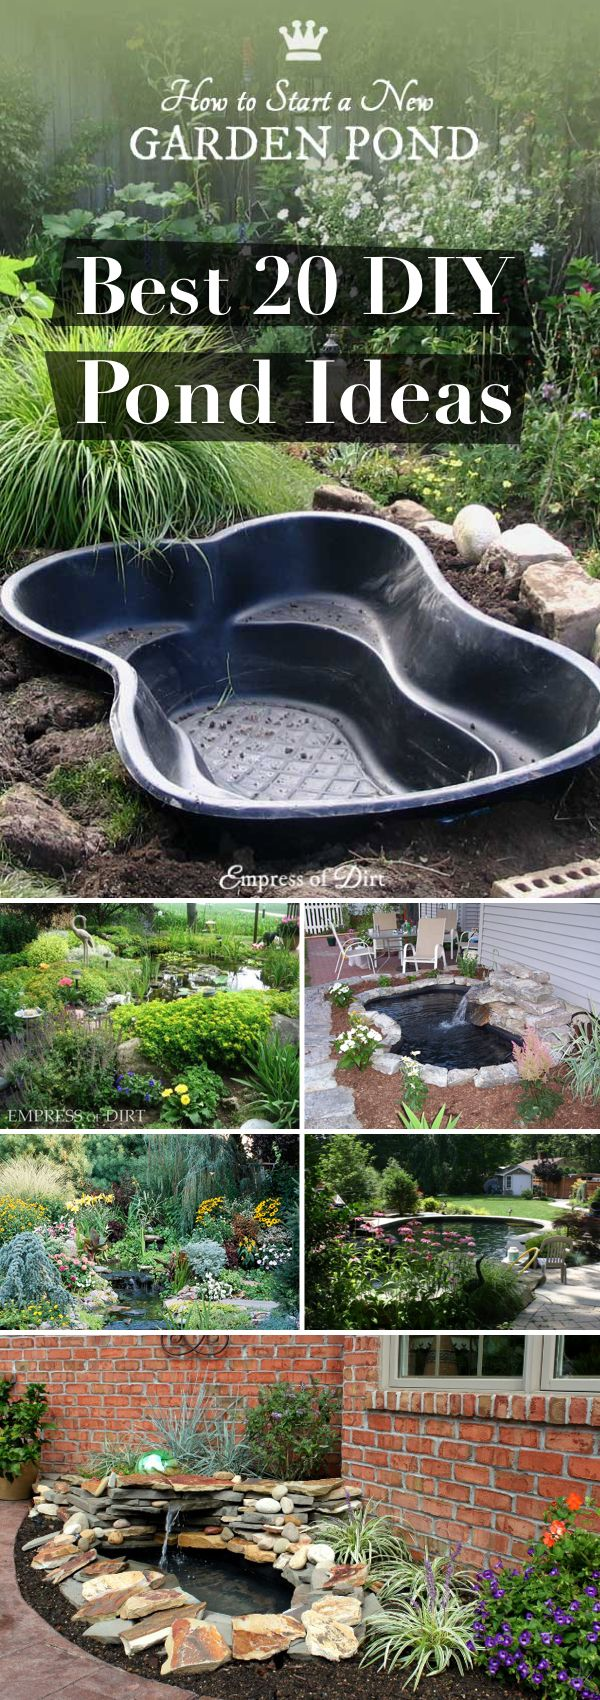 Best 25+ Building a pond ideas on Pinterest | A pond, Fish ponds ...